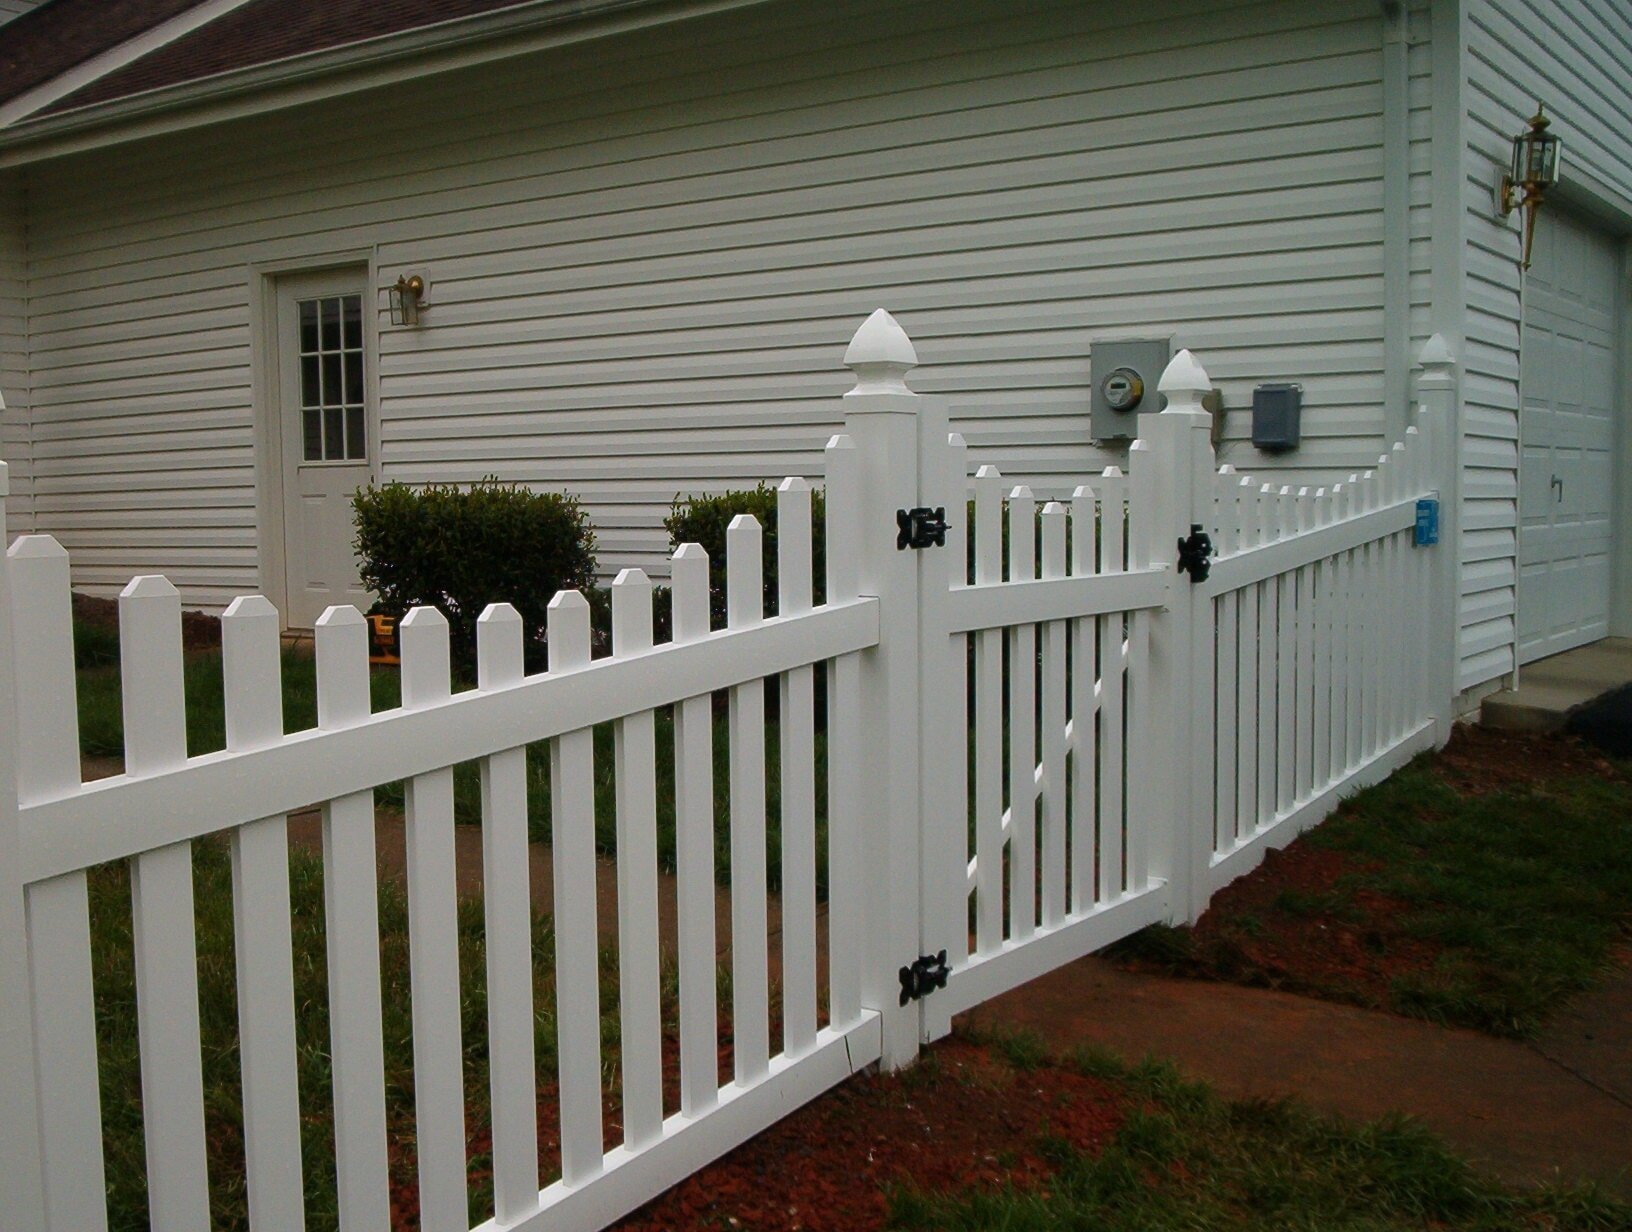 Fencing Company Custom Wood Fencing Kingsport Tn